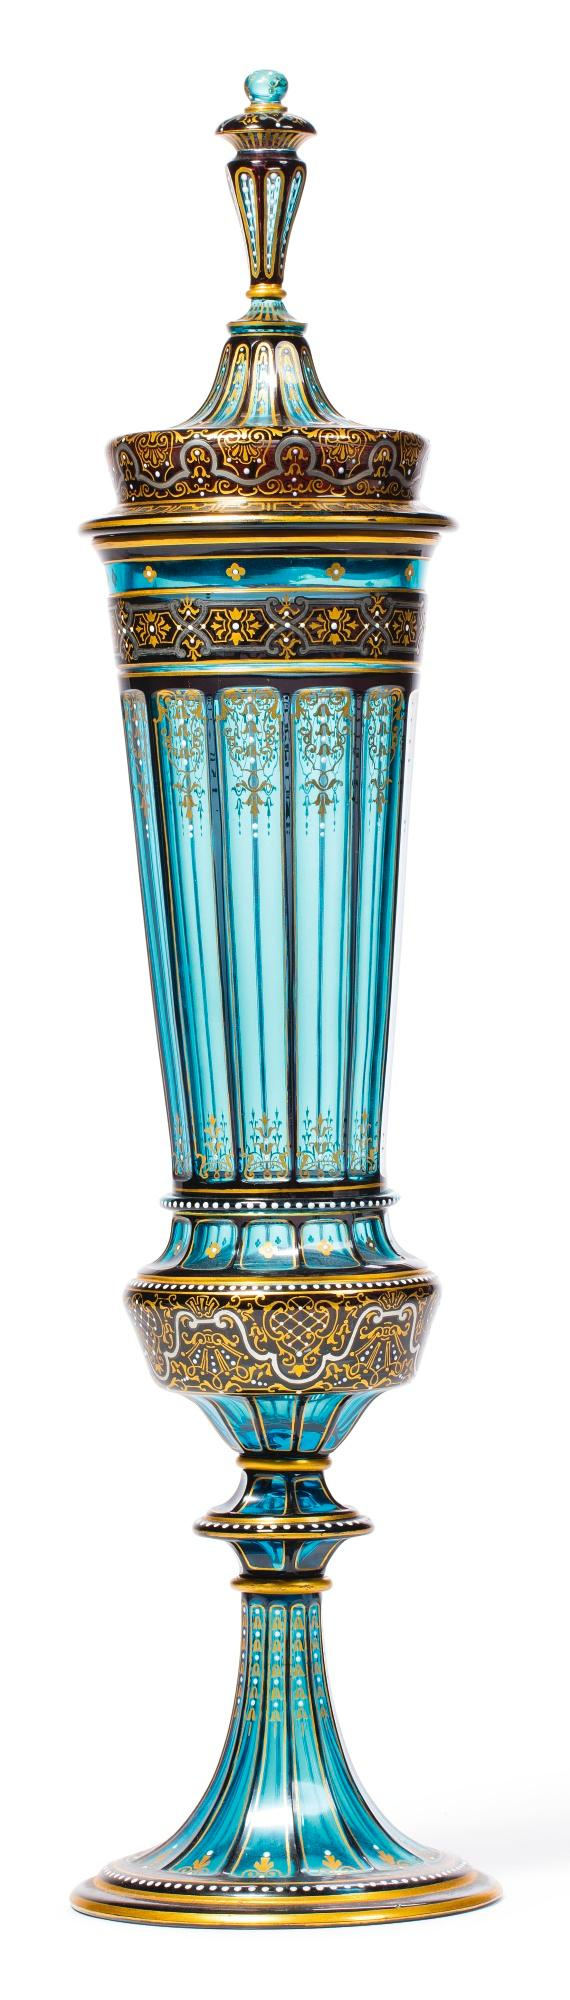 A J. & L. LOBMEYR JEWELLED TURQUOISE GLASS LARGE CUP AND COVER<BR>CIRCA 1880 |